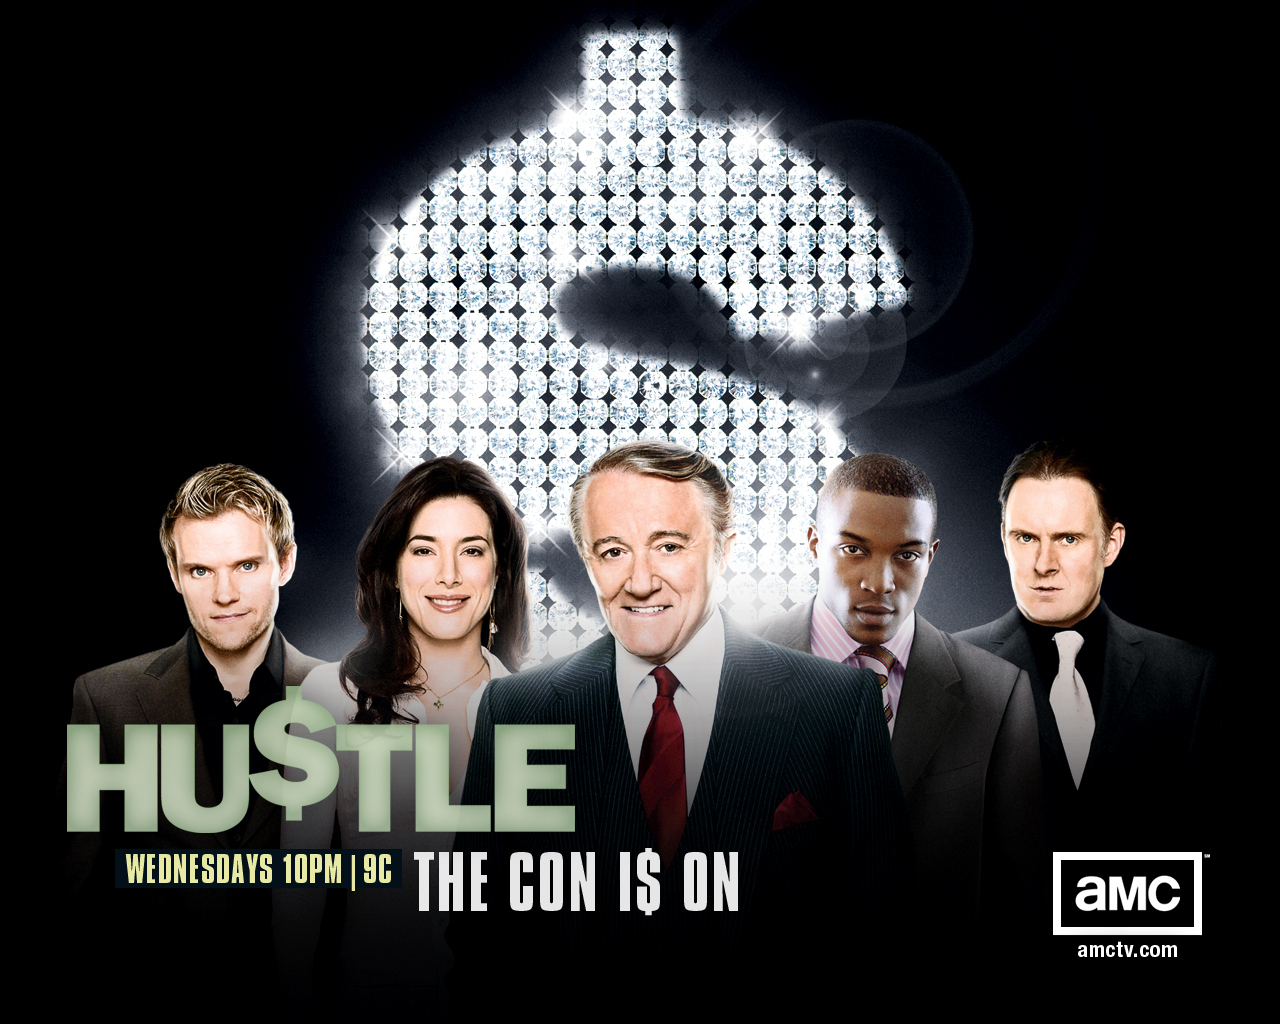 Hustle Images HD Wallpaper And Background Photos